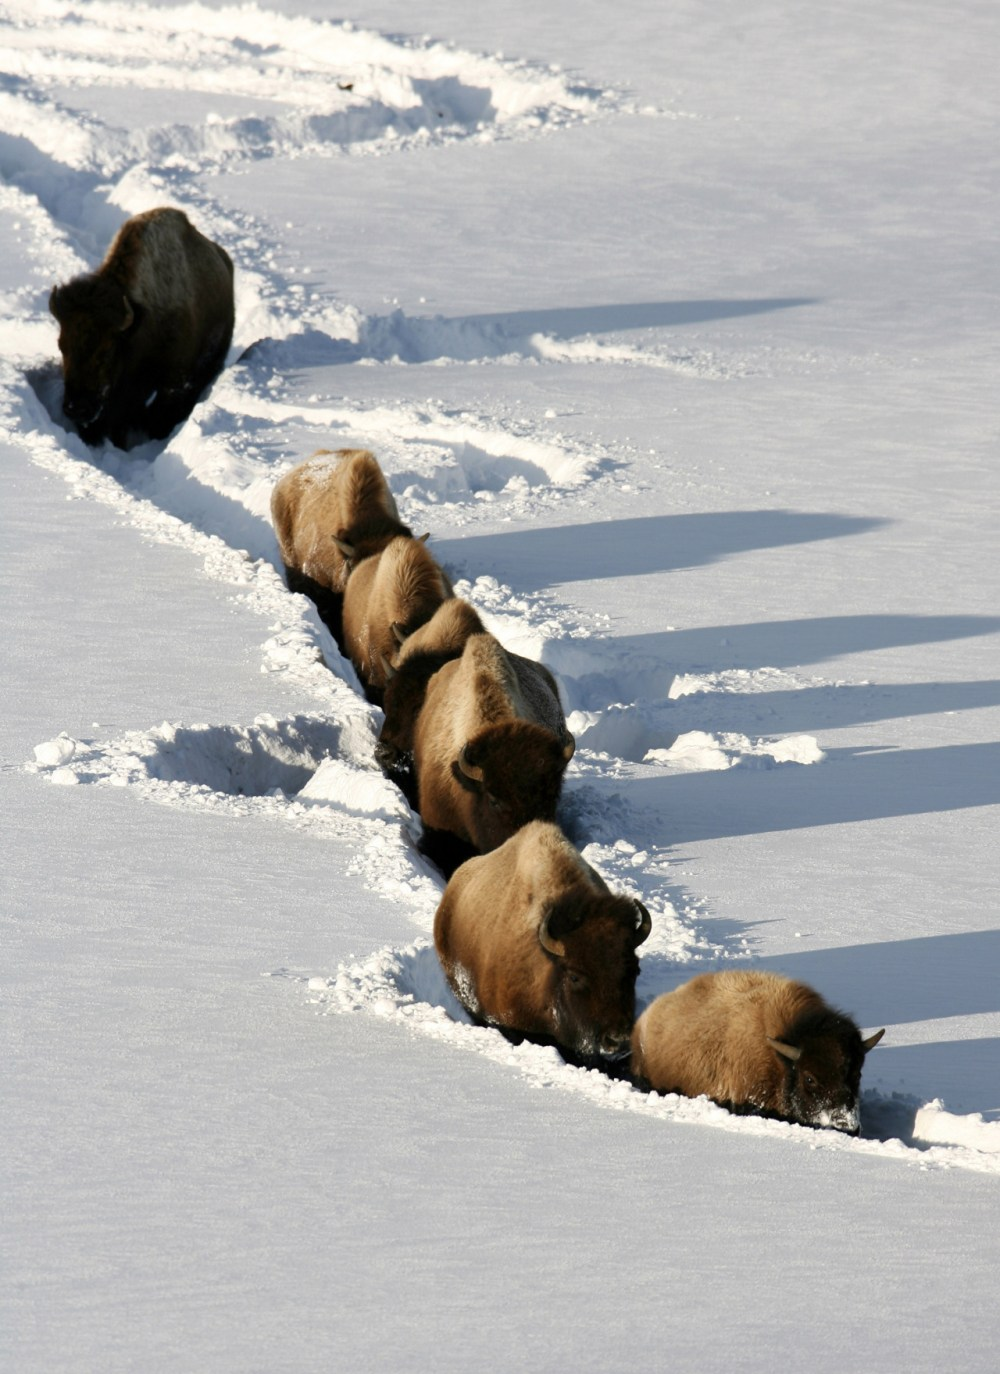 Walking in the deep snow can be difficult. Bison use their strong necks to push forward and make a path, their shaggy faces keep them from getting too cold and they take turns leading the way. These adaptations allow them to thrive in the harsh winter conditions of Yellowstone National Park in Wyoming. Photo by Jim Peaco, National Park Service. Posted on Tumblr by the US Department of the Interior, 1/23/16.